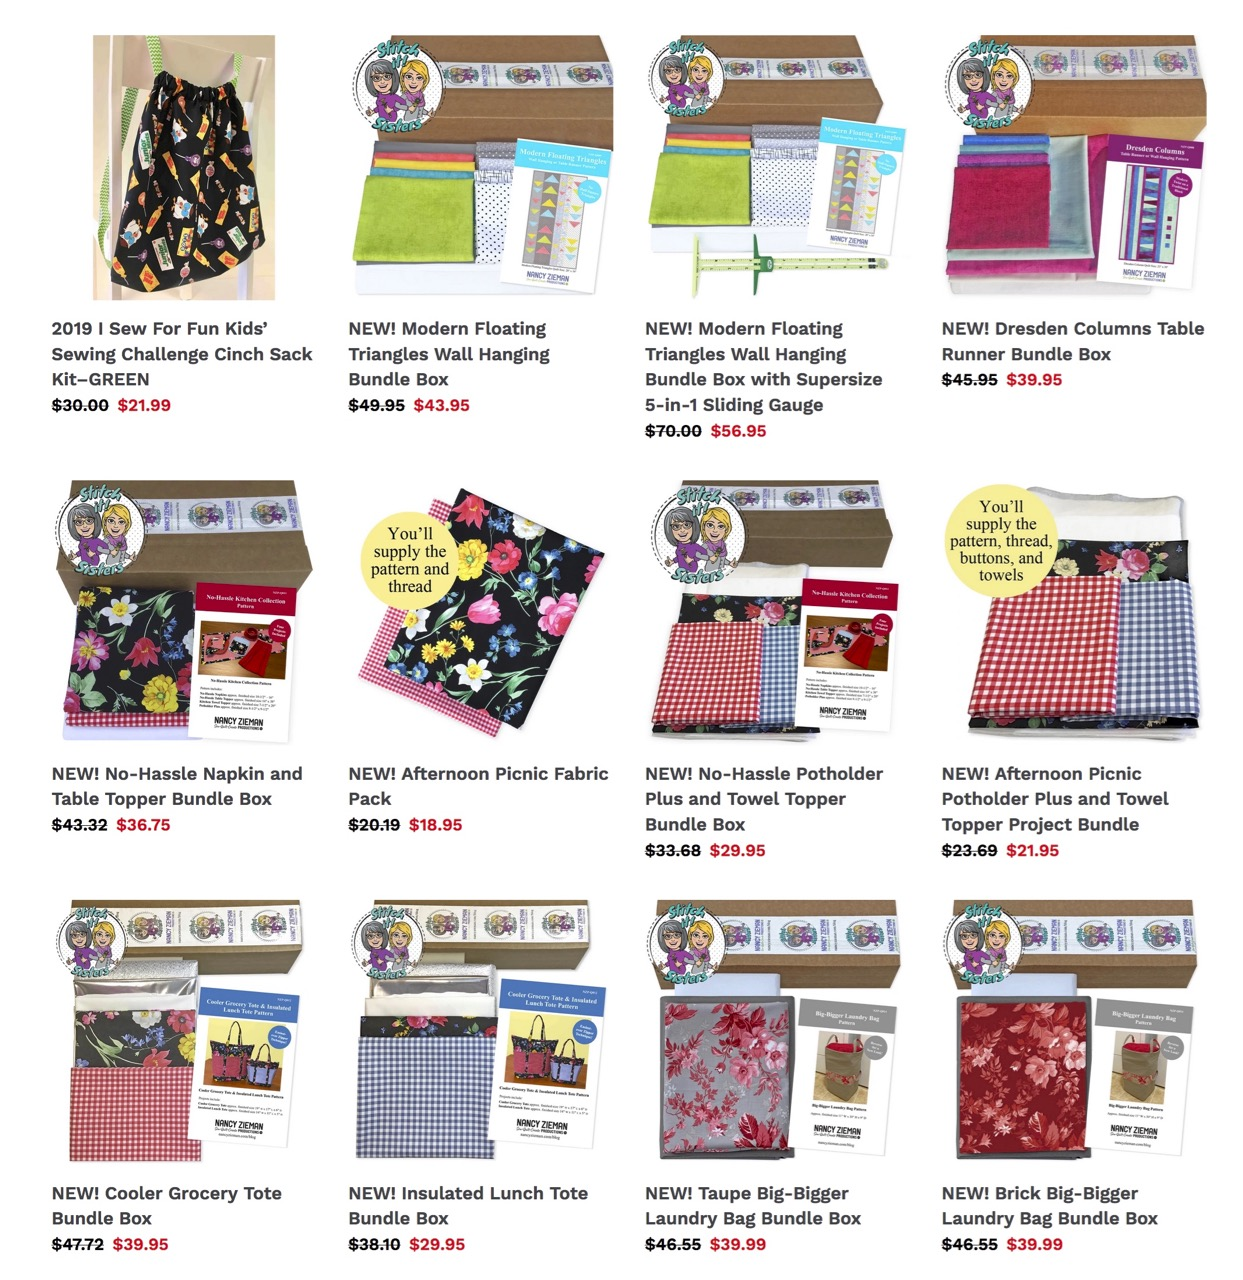 Sewing Kits and Quilting Bundle Boxes Available at ShopNZP.com